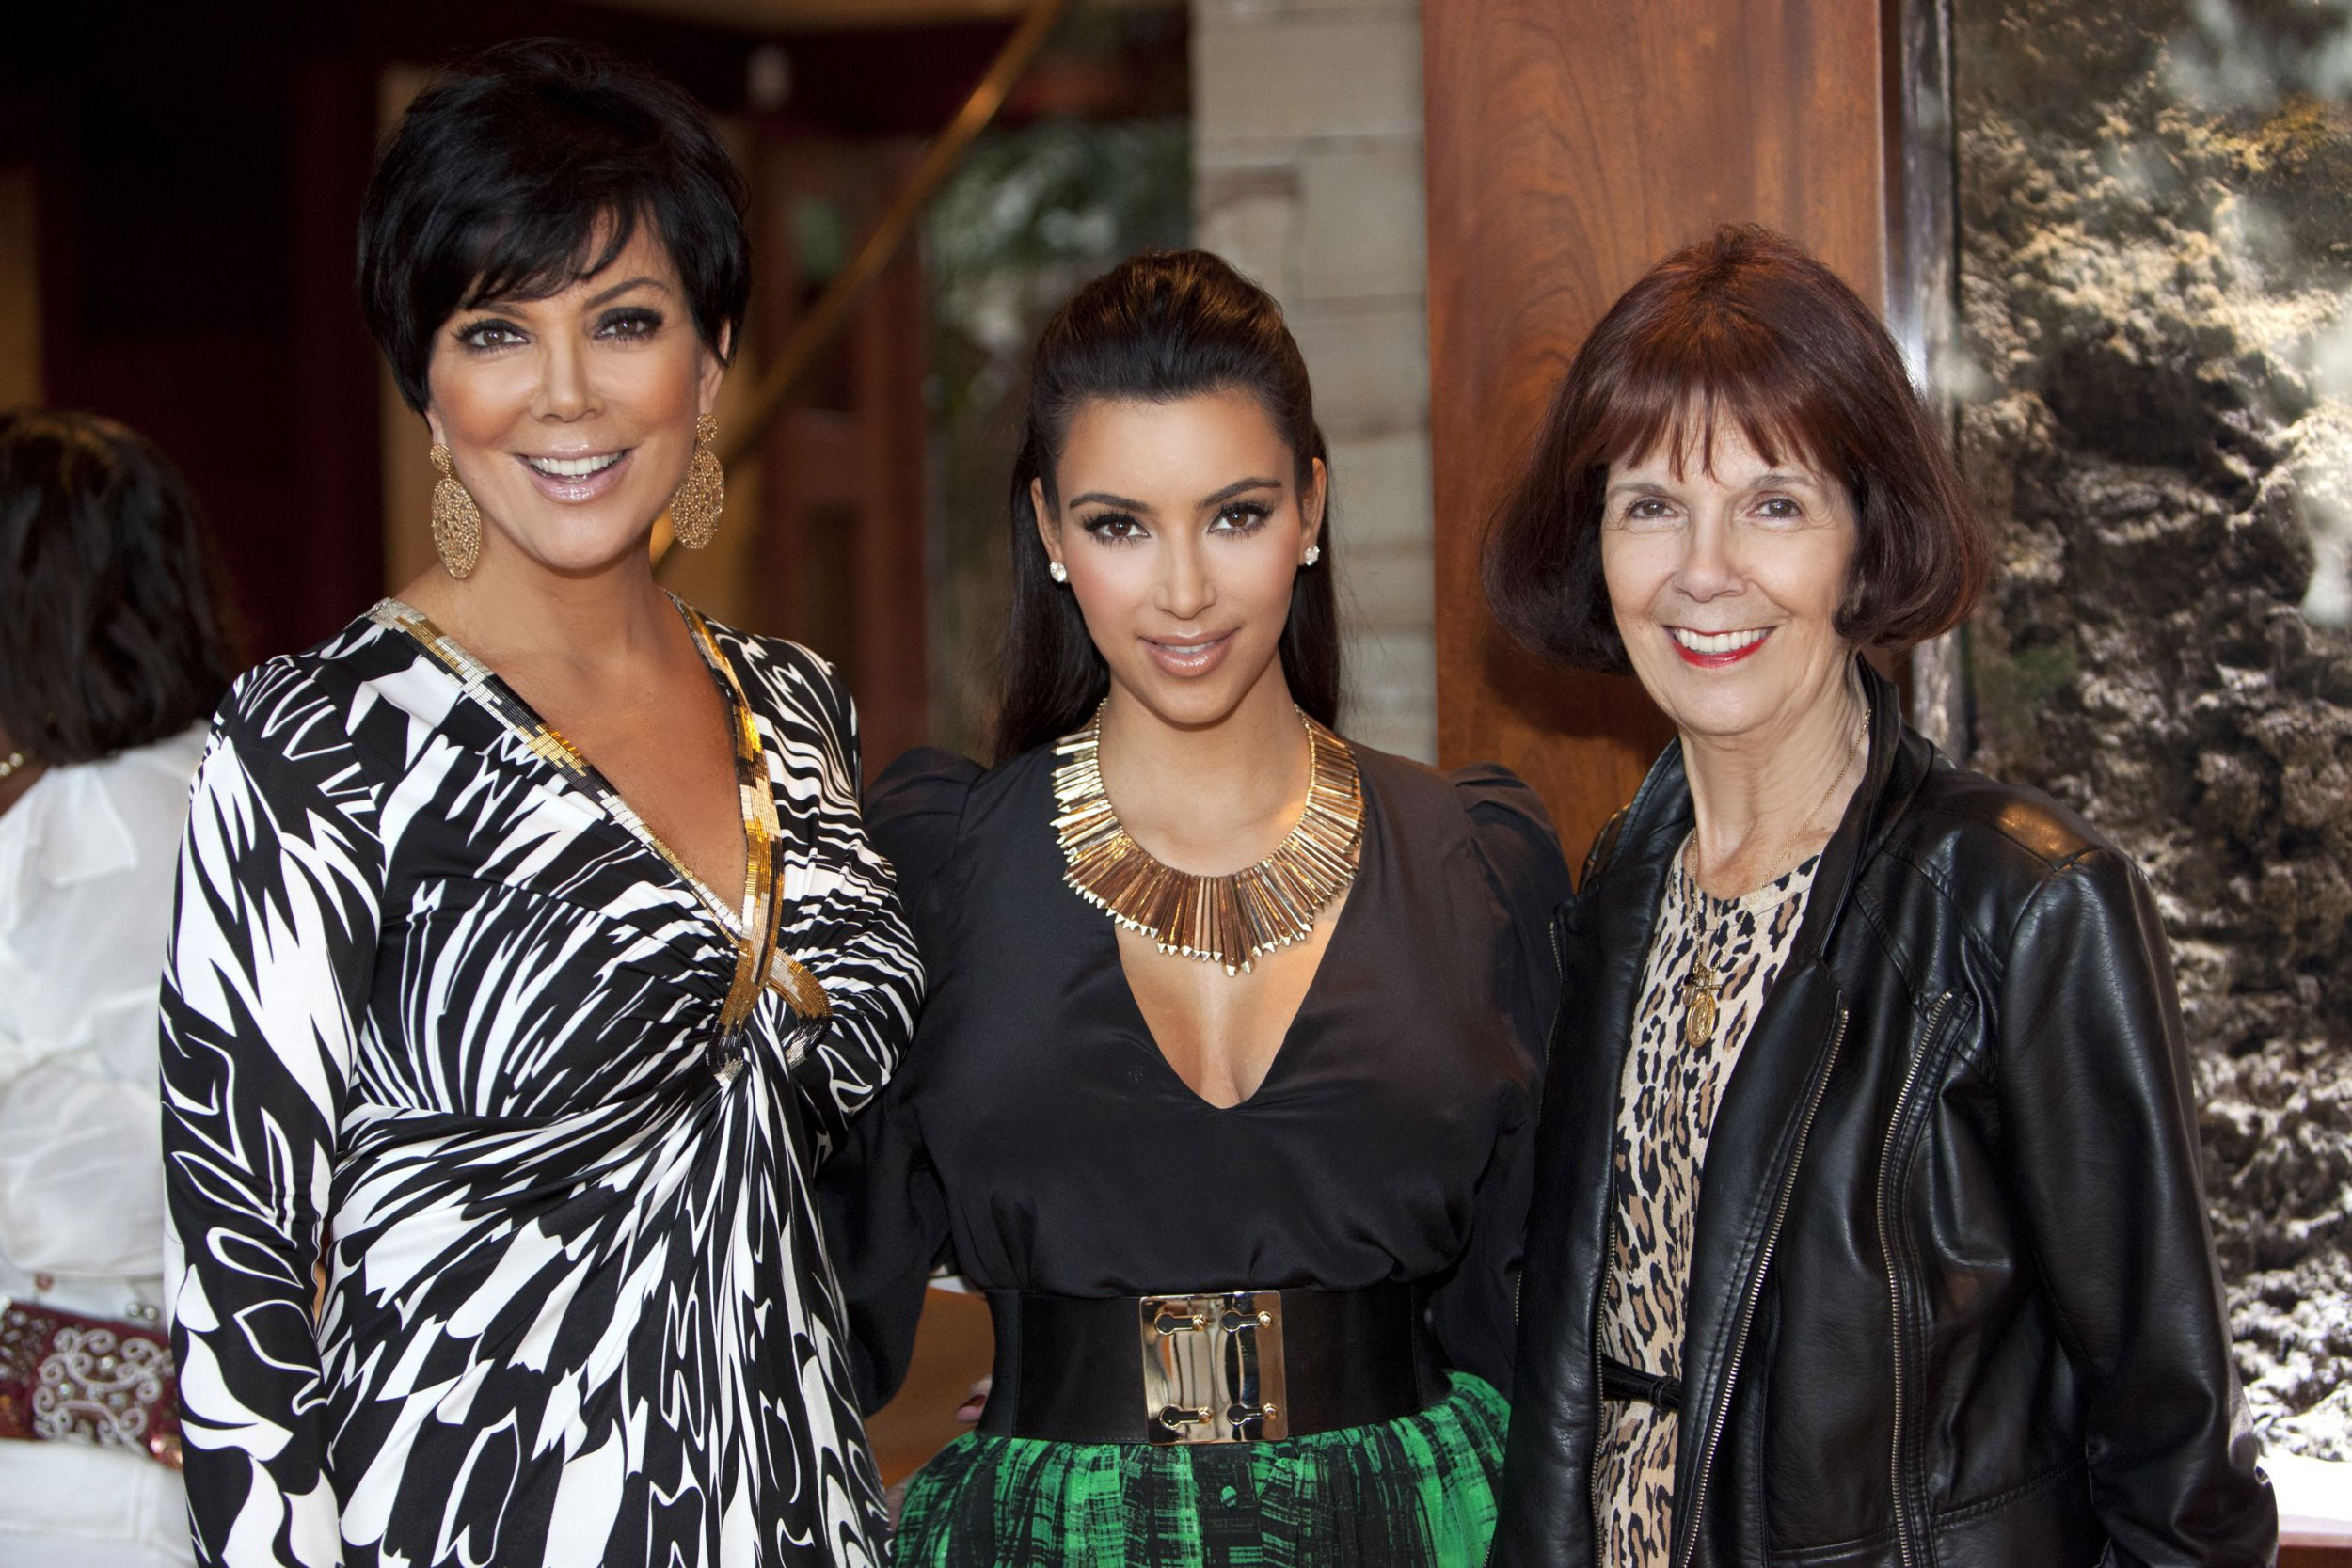 Exclusive Mandatory Credit: Photo by Startraks Photo/REX/Shutterstock (1447969p) Kim Kardashian, Kris Jenner with mother Mary Houghton Pre-wedding dinner for Kim Kardashian and Kris Humphries, Santa Barbara, California, America - 19 Aug 2011